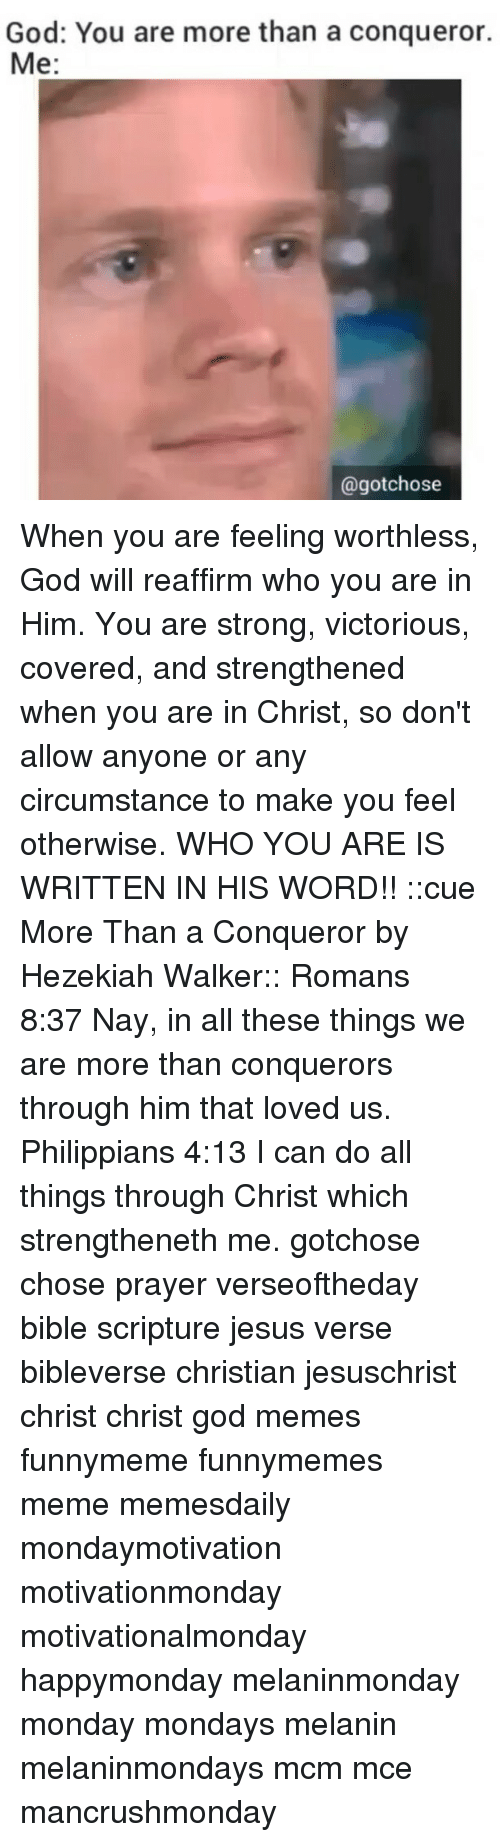 God, Jesus, and Meme: God: You are more than a conqueror.  Me  @got chose When you are feeling worthless, God will reaffirm who you are in Him. You are strong, victorious, covered, and strengthened when you are in Christ, so don't allow anyone or any circumstance to make you feel otherwise. WHO YOU ARE IS WRITTEN IN HIS WORD!! ::cue More Than a Conqueror by Hezekiah Walker:: Romans 8:37 Nay, in all these things we are more than conquerors through him that loved us. Philippians 4:13 I can do all things through Christ which strengtheneth me. gotchose chose prayer verseoftheday bible scripture jesus verse bibleverse christian jesuschrist christ christ god memes funnymeme funnymemes meme memesdaily mondaymotivation motivationmonday motivationalmonday happymonday melaninmonday monday mondays melanin melaninmondays mcm mce mancrushmonday